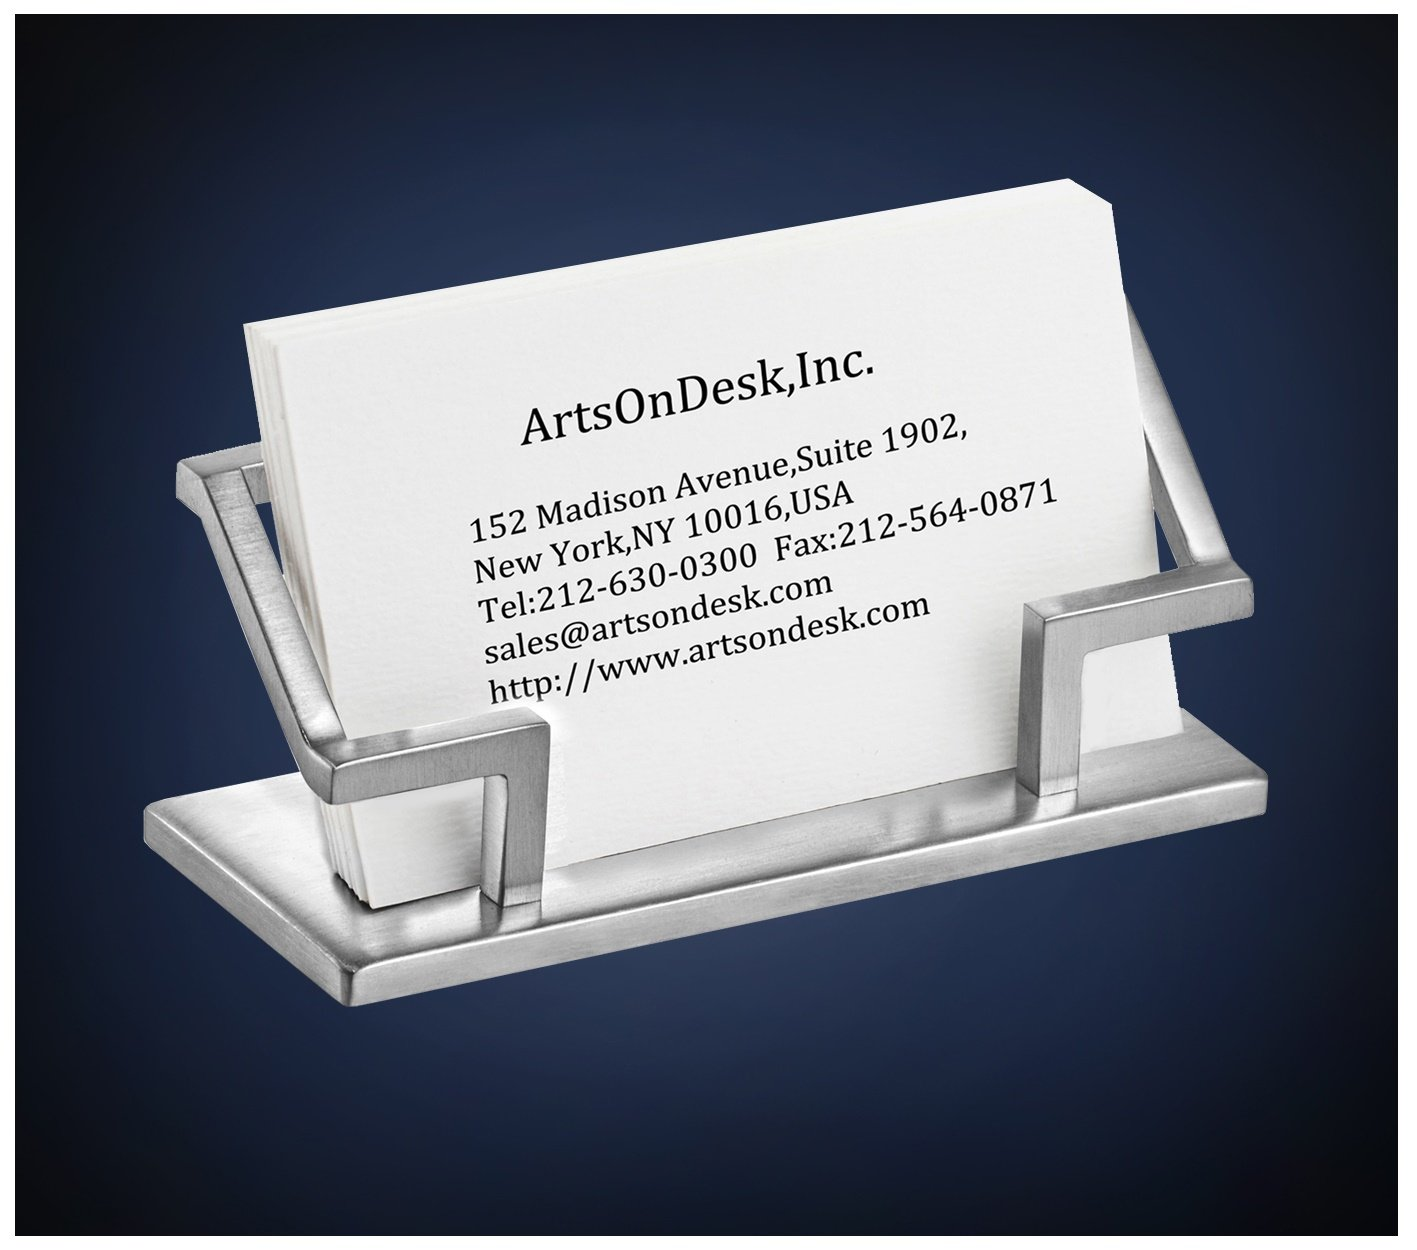 ArtsOnDesk Modern Art Business Card Holder St201 Stainless Steel Satin Finish Patented Luxury Desk Accessory Business Name Card Stand Case Office Organizer Christmas Valentines Day Graduation Gift